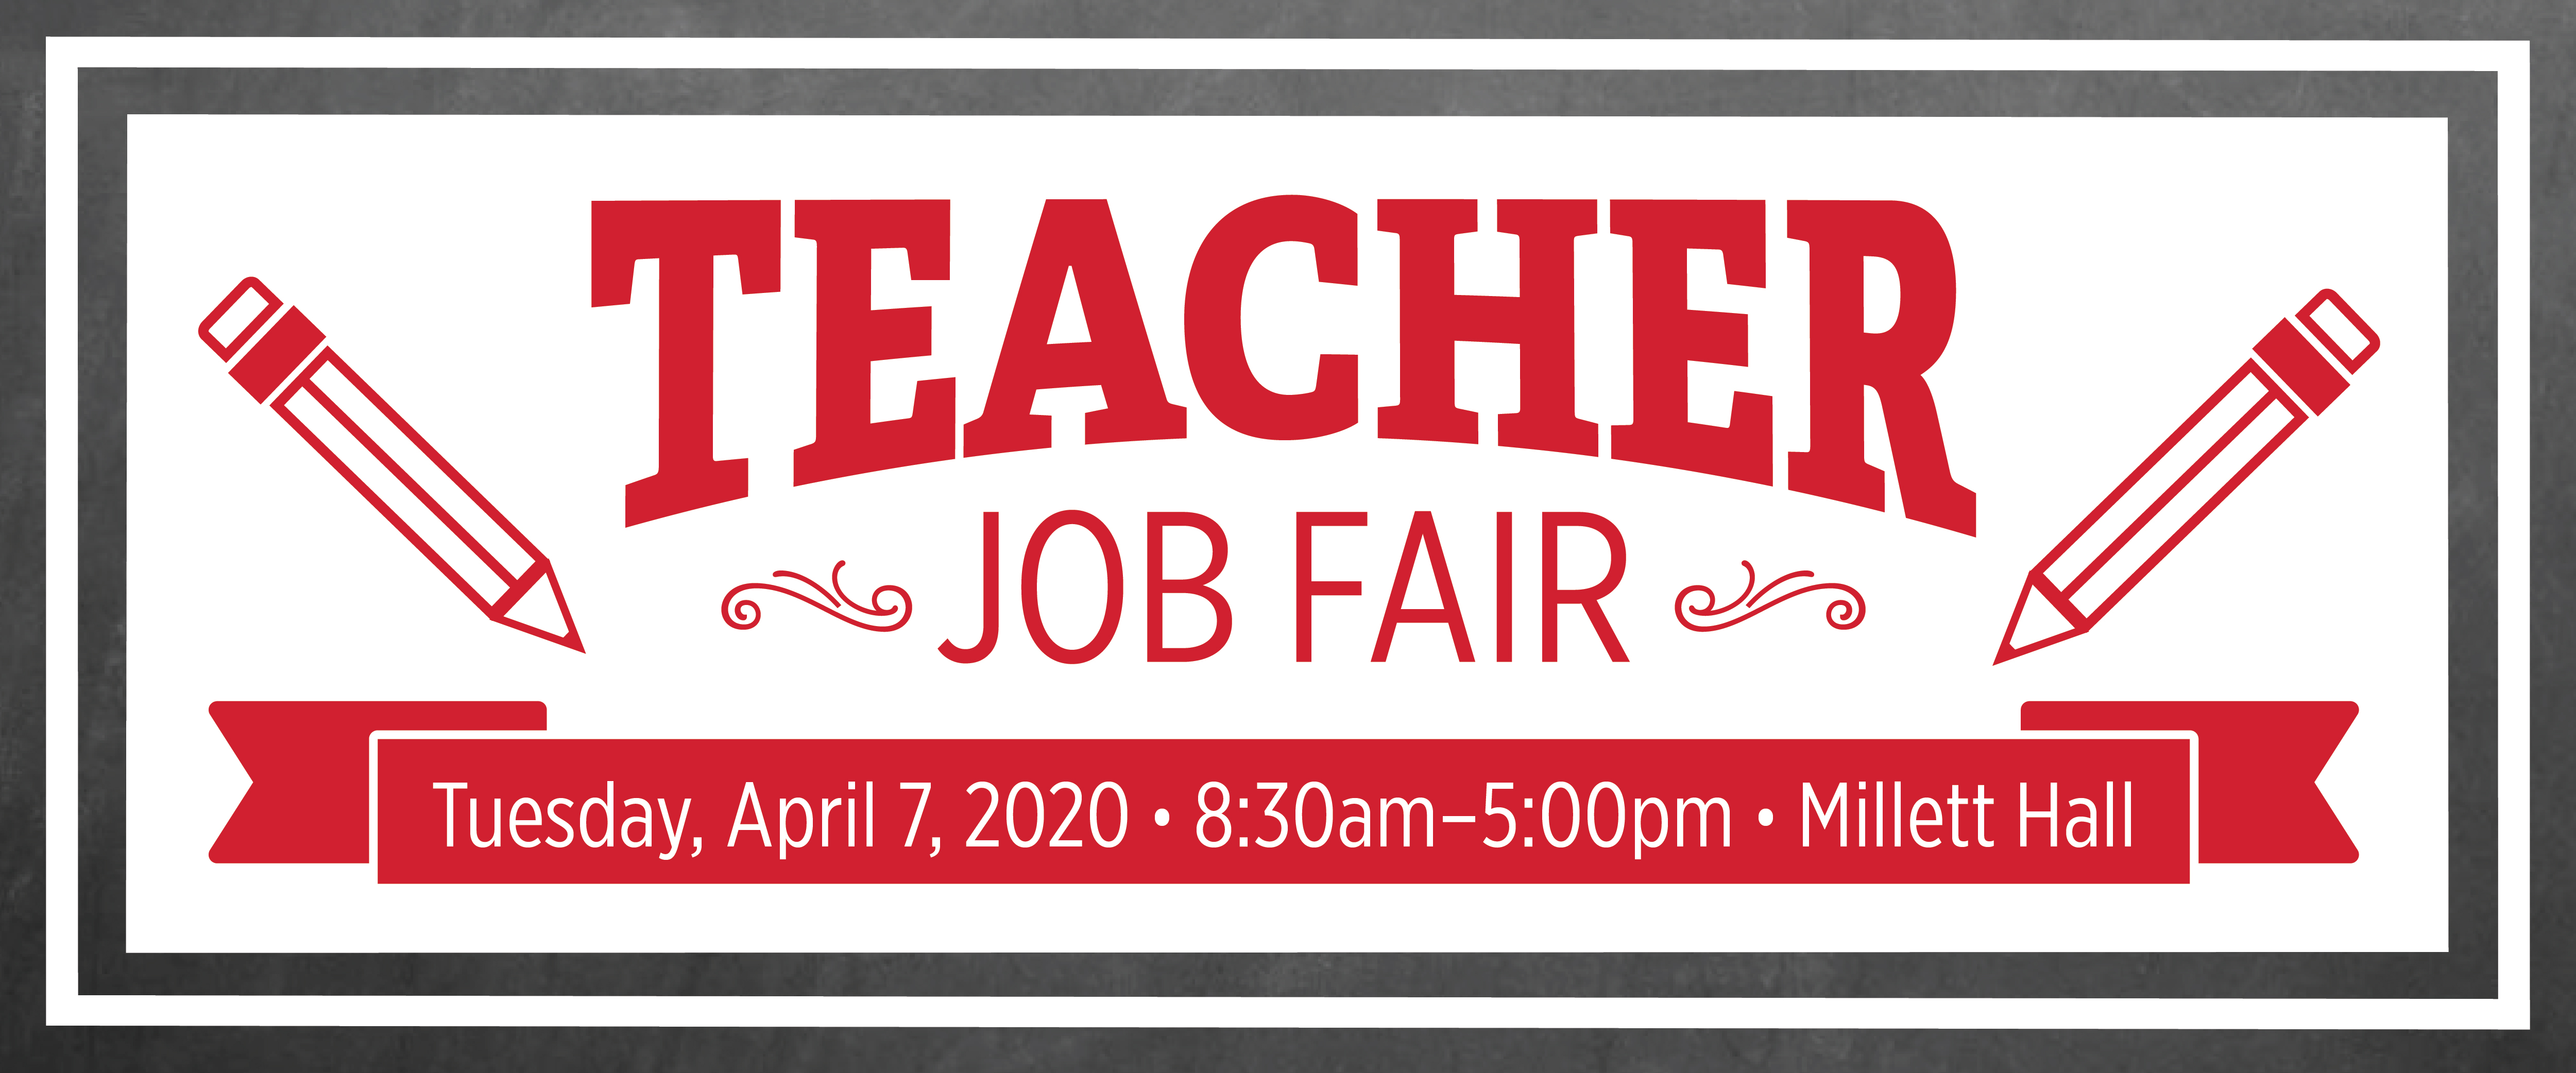 Teacher Job Fair on Tuesday, April 7, 2020 from 8:30am–5:00pm at Millett Hall